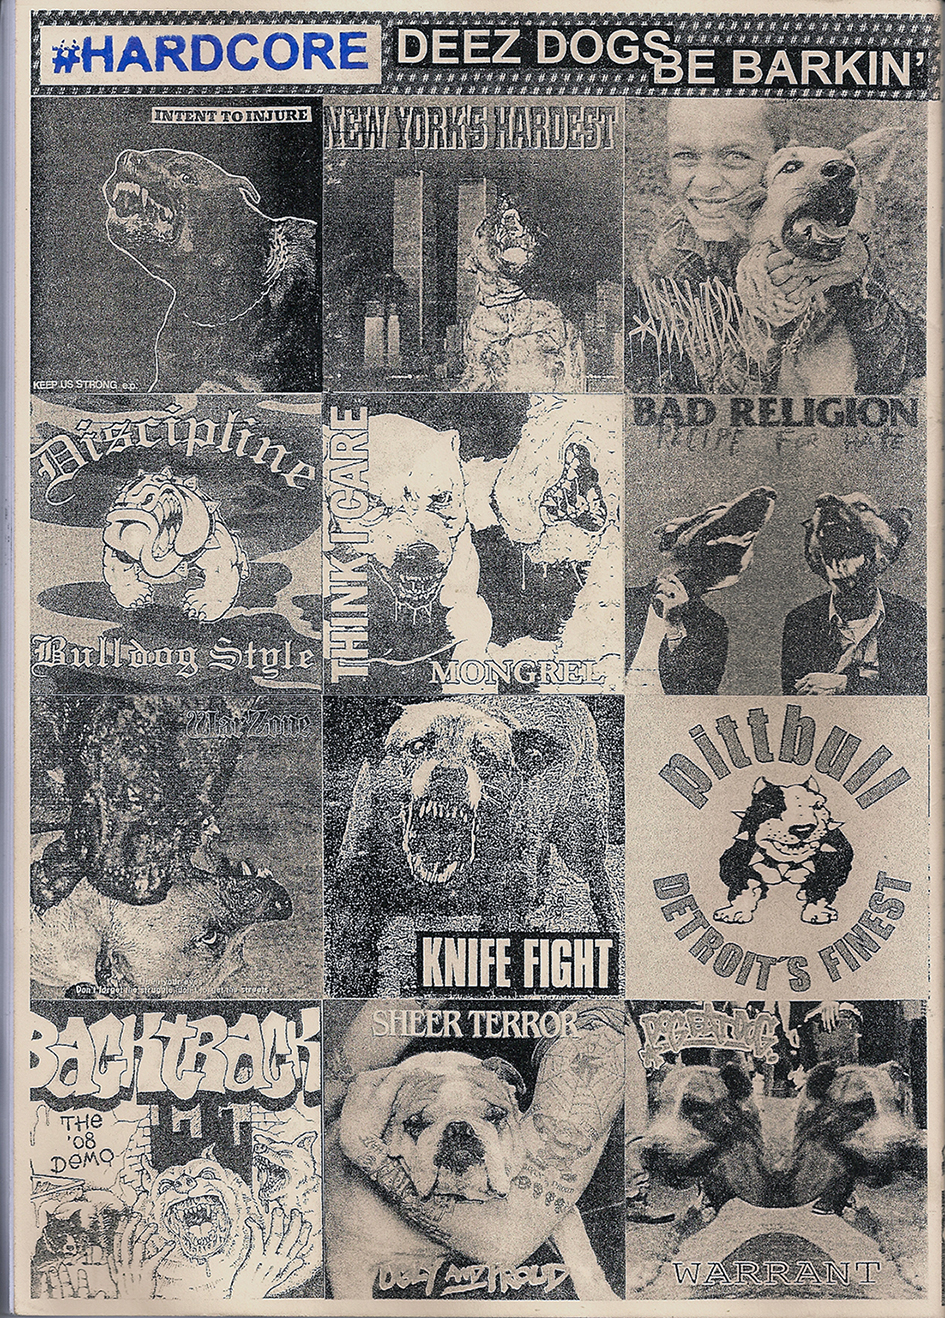 Hardcore record cover with dogs